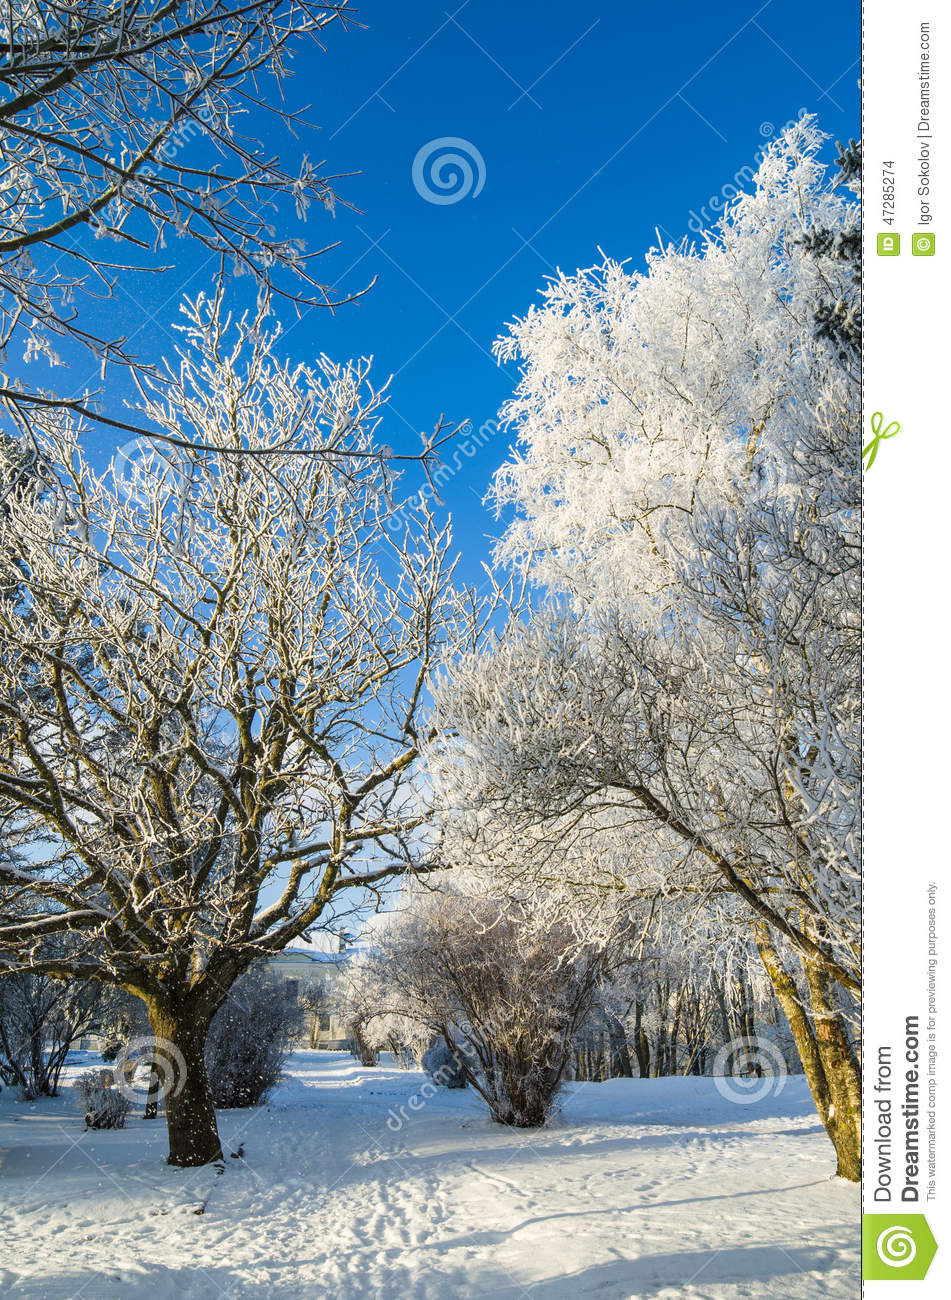 Beautiful Winter Outfit Www Pinterest Com: Beautiful Winter Scenery With Fresh Snow And Trees In A